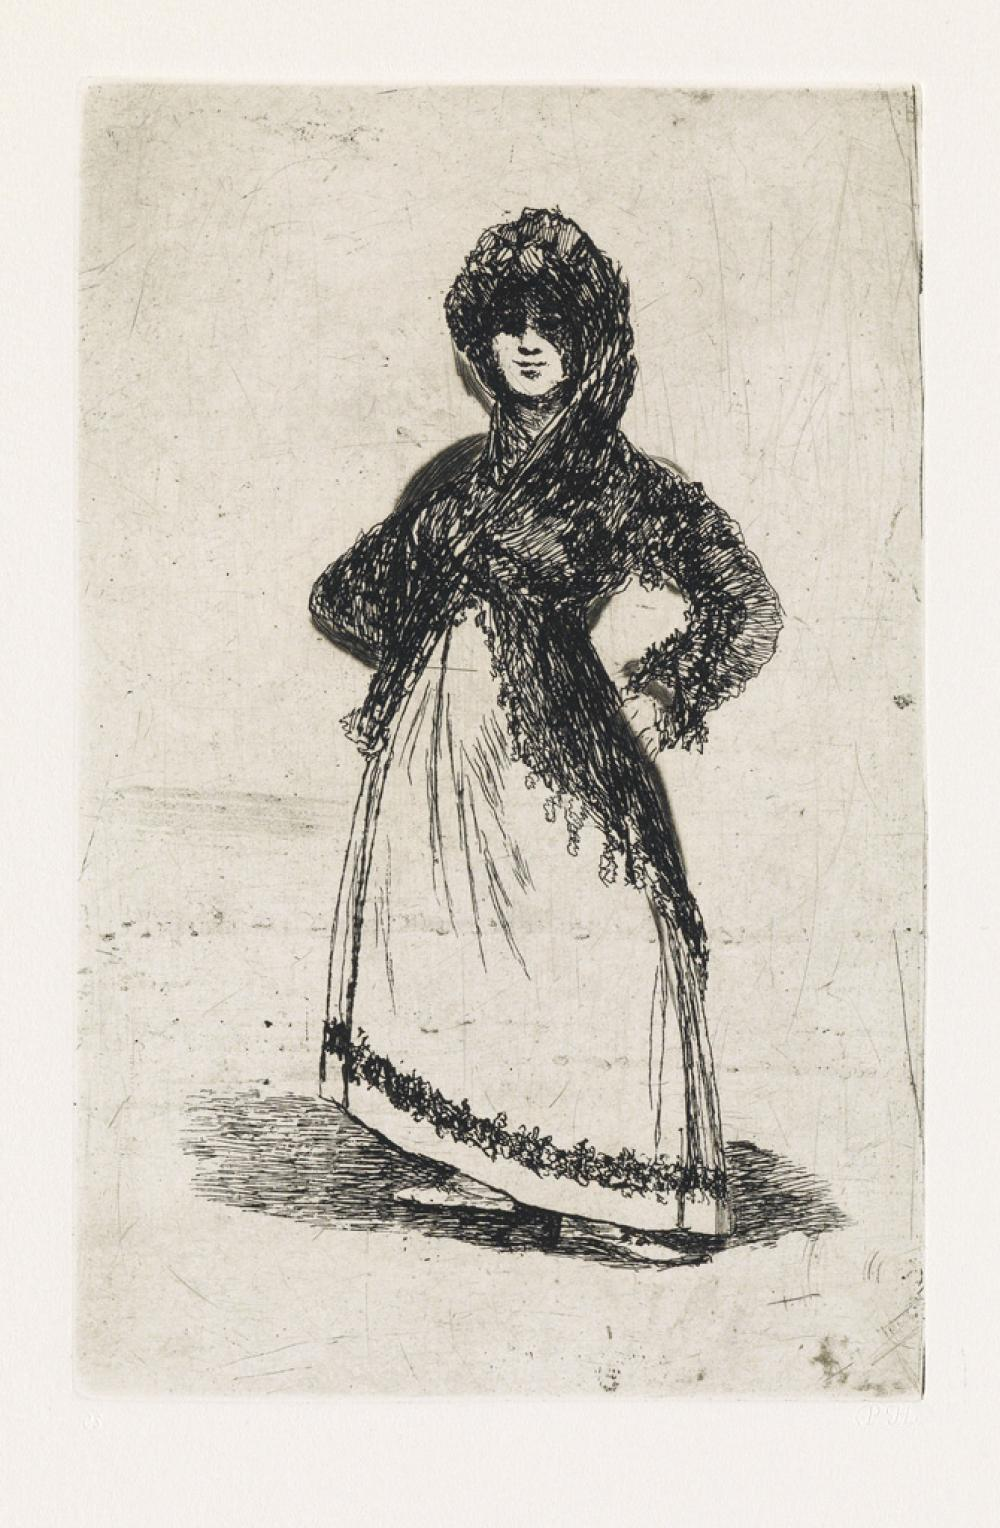 FRANCISCO JOSÉ DE GOYA A group of 6 etchings with aquatint and drypoint executed in Bordeaux between 1824 and 1828.